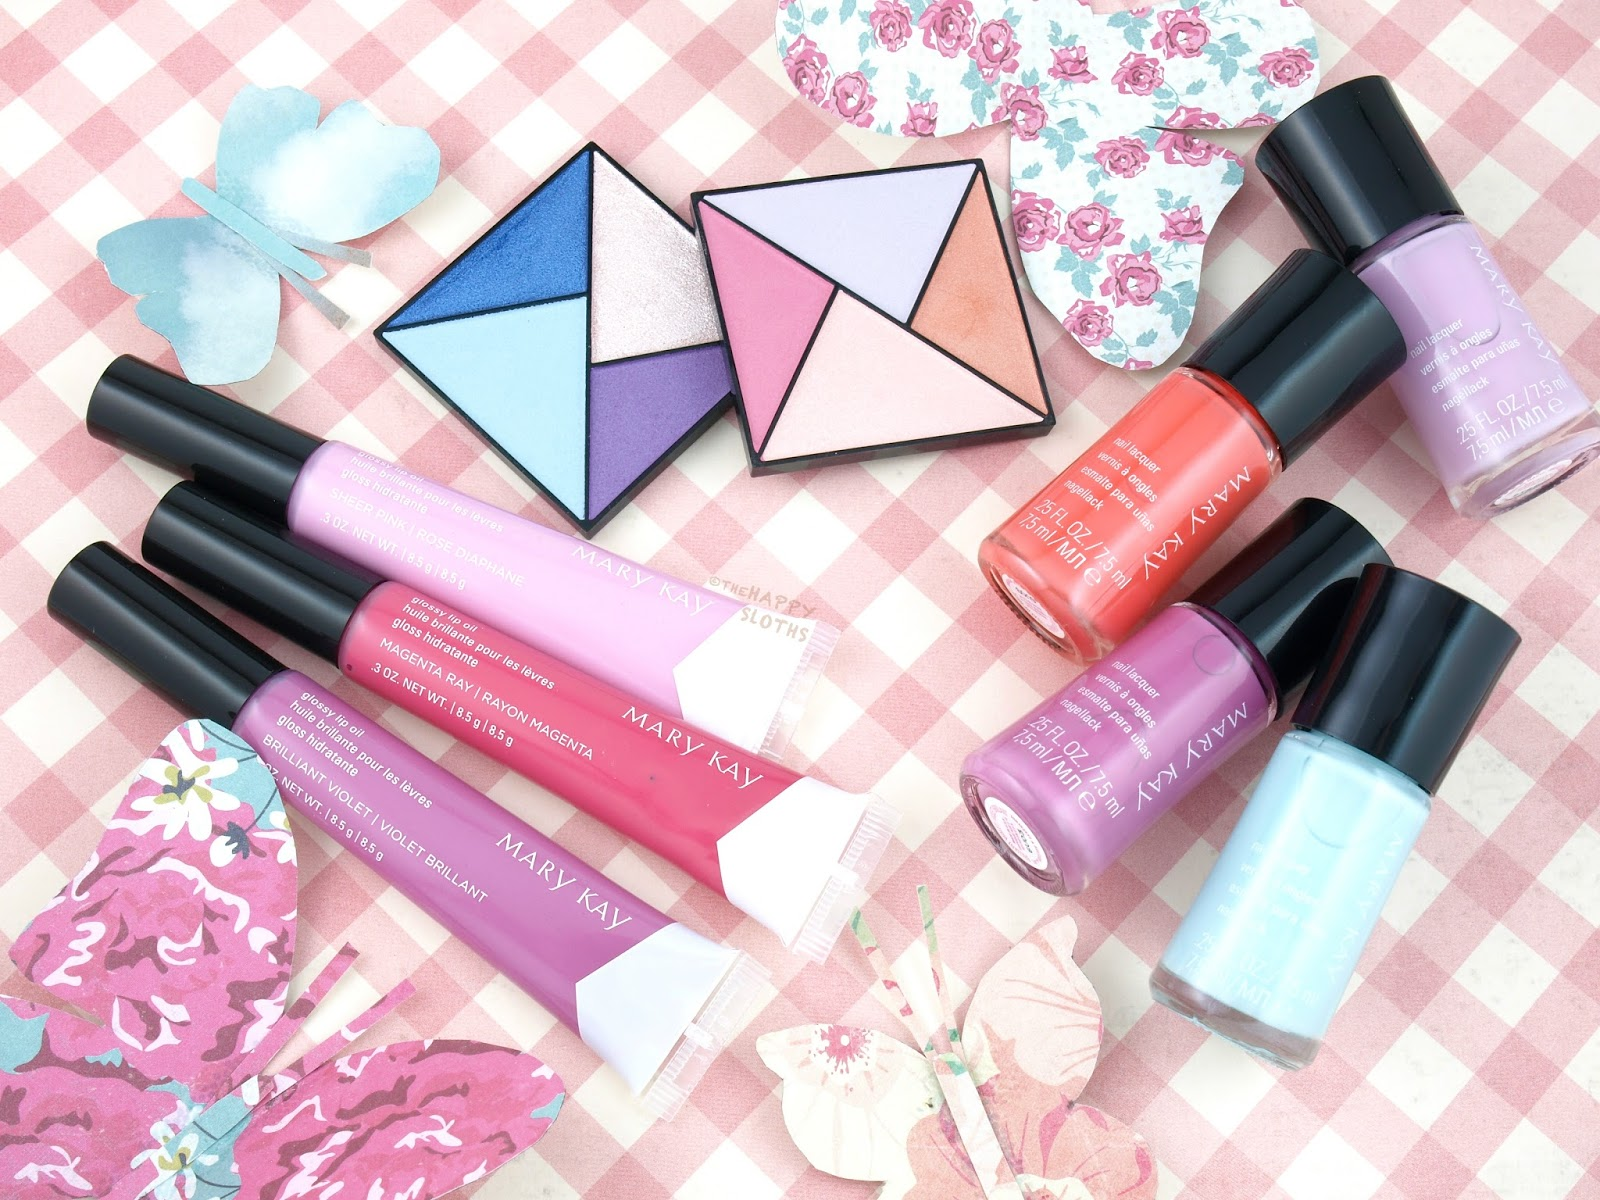 Mary Kay Spring 2017 Light, Reinvented Collection